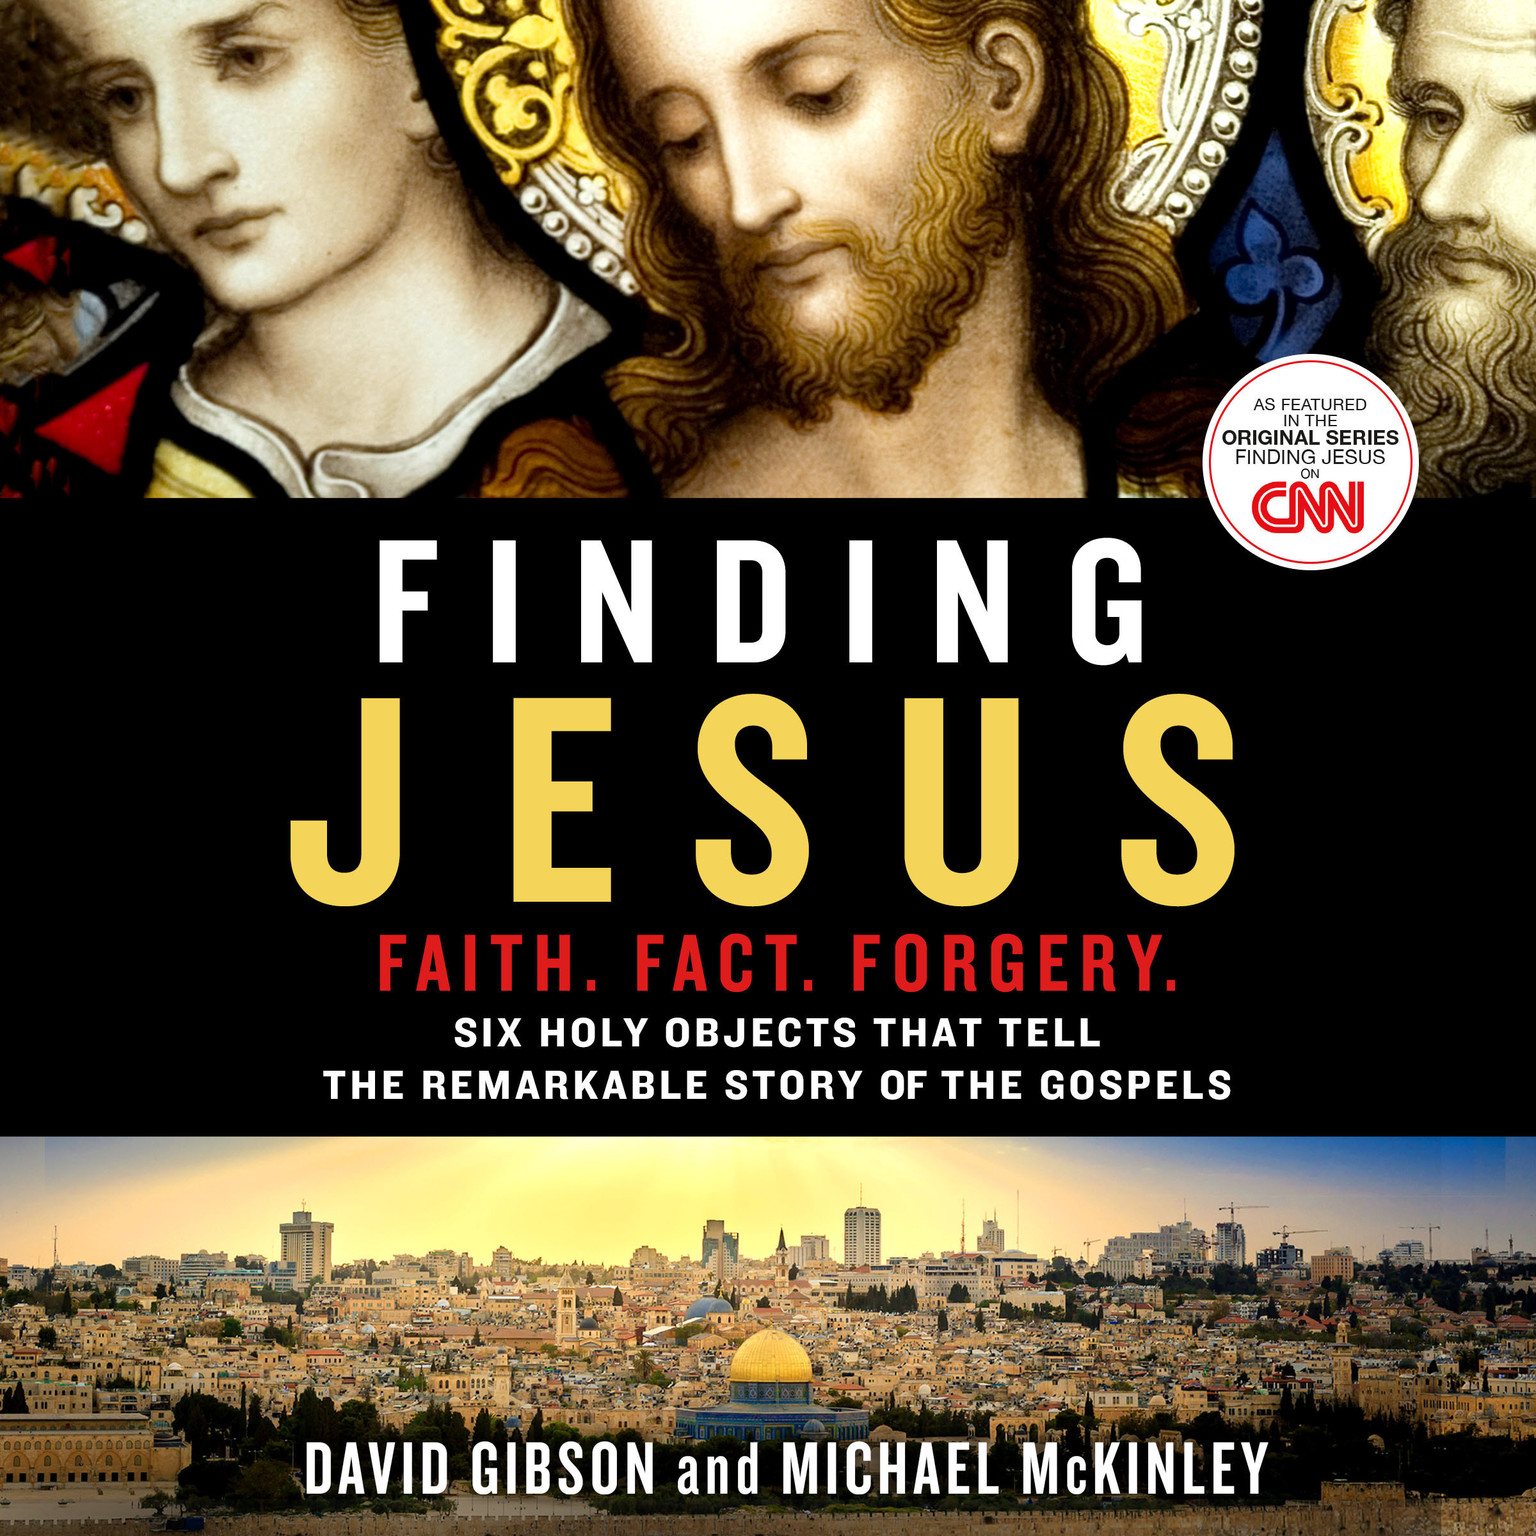 Printable Finding Jesus: Faith. Fact. Forgery.: Six Holy Objects That Tell the Remarkable Story of the Gospels Audiobook Cover Art